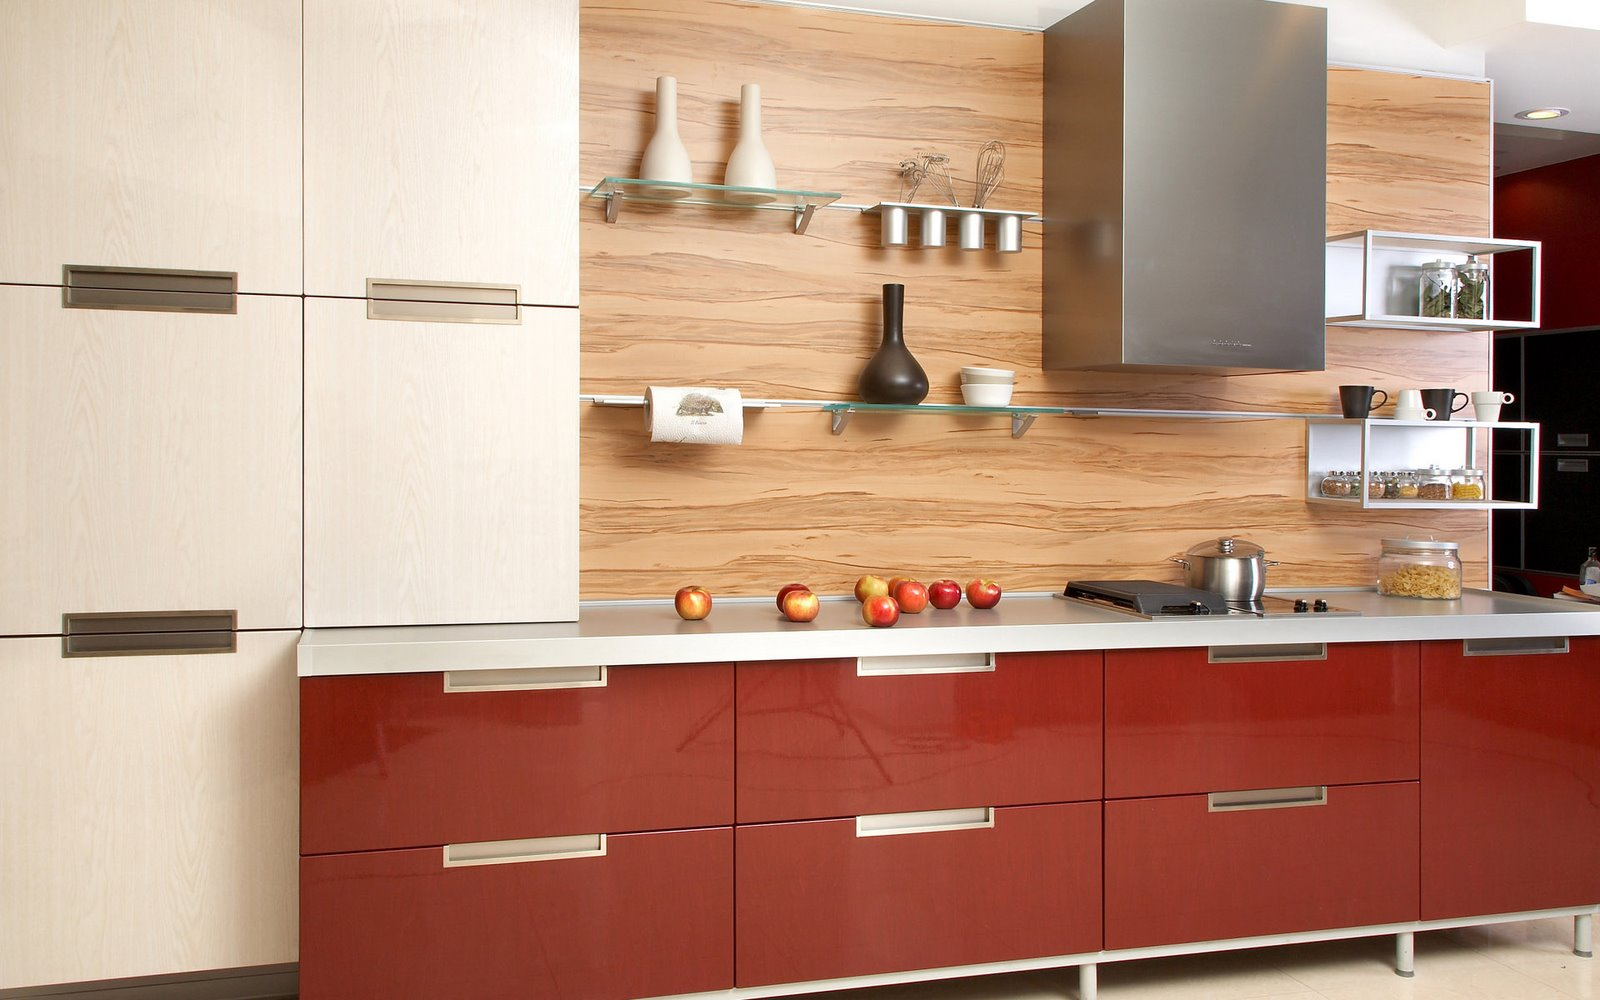 Modern wood kitchen design dream kitchens pinterest - Kitchen design wood cabinets ...